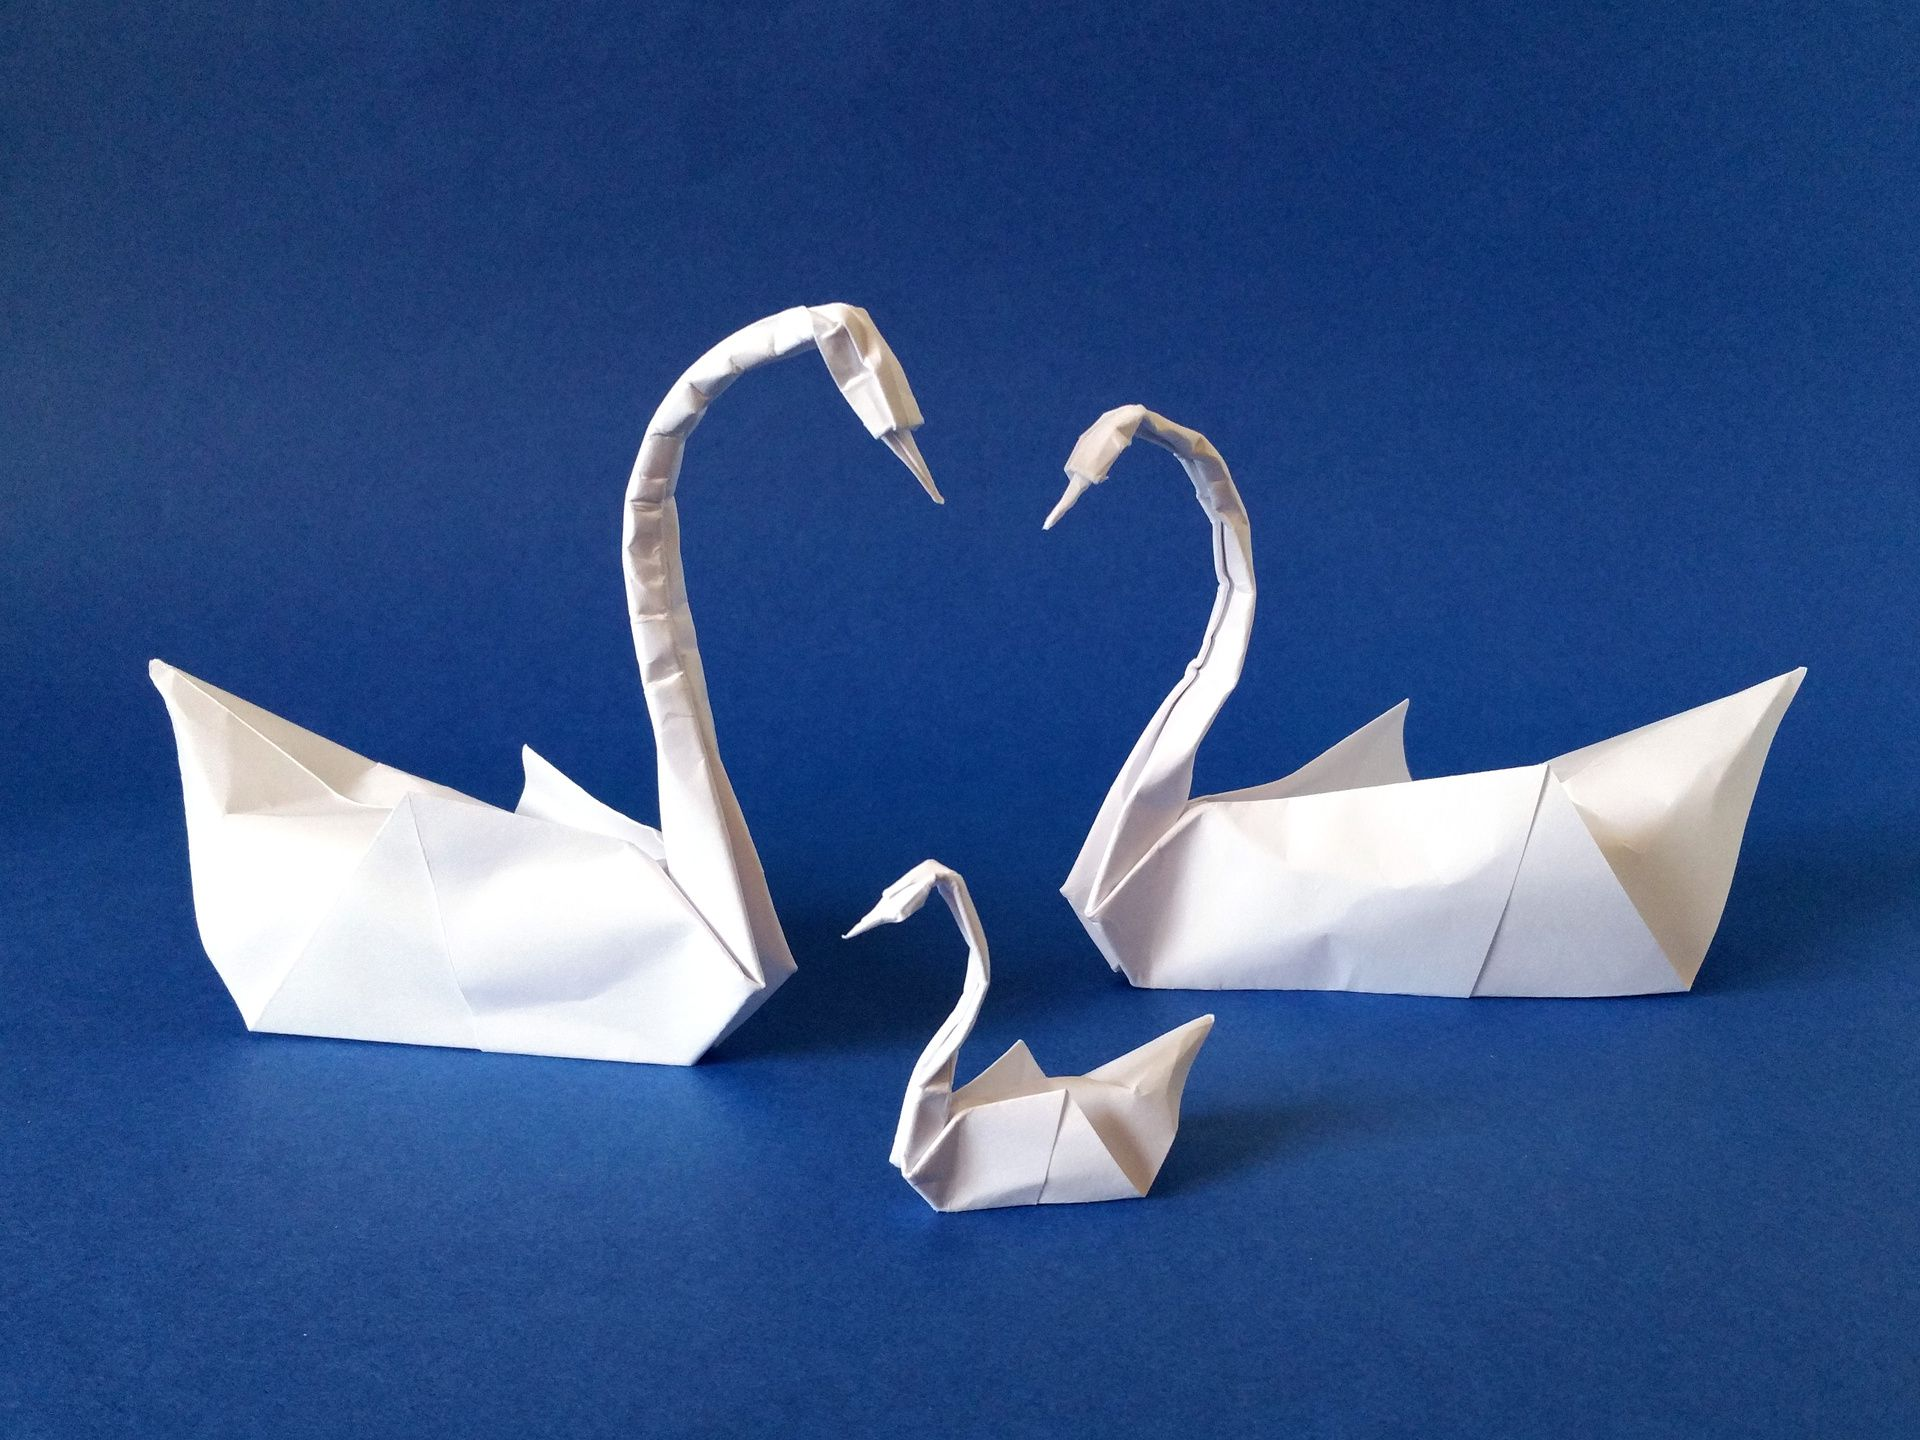 How to origami a swan - Origami Swans Couple And Swanling